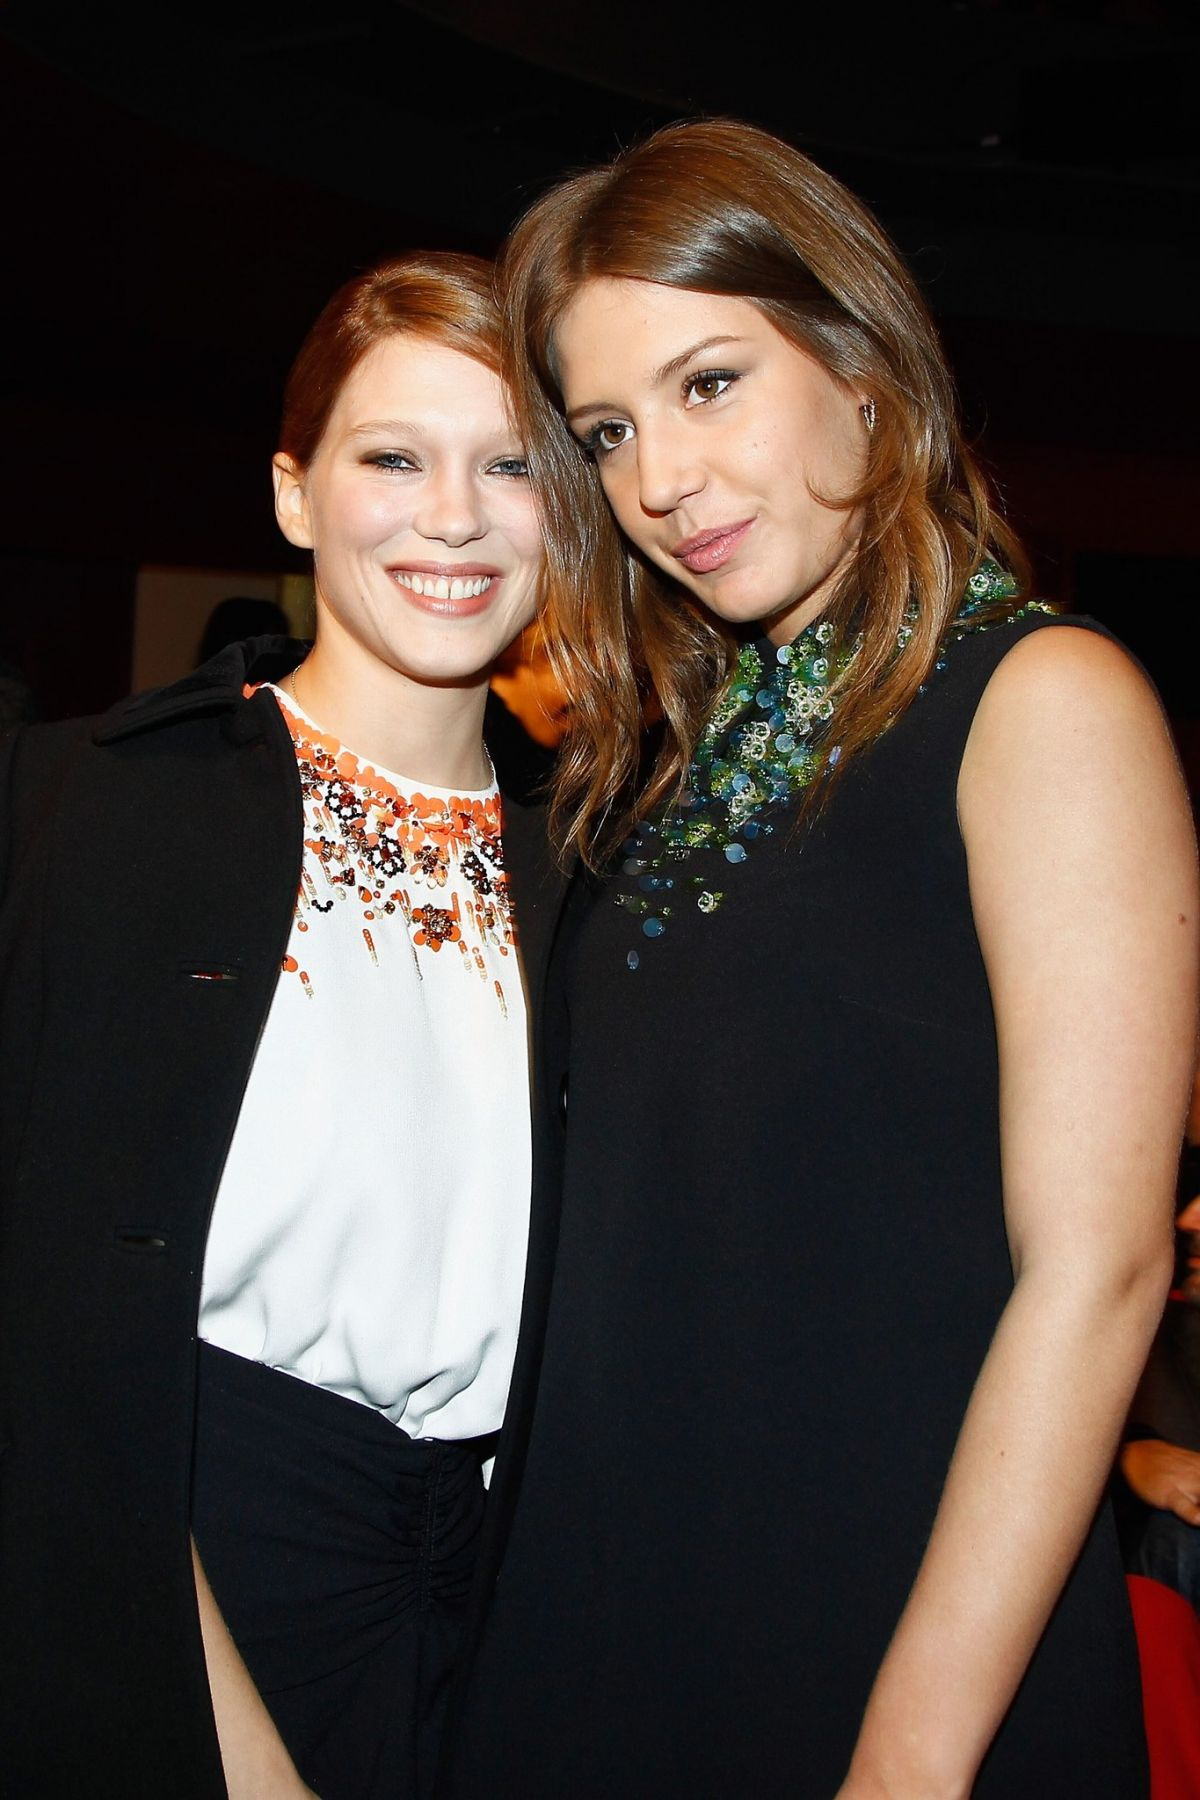 ADELE EXARCHOPOULOS and LEA SEYDOUX at Les Lumieres 2014 Cinema Awards in Paris